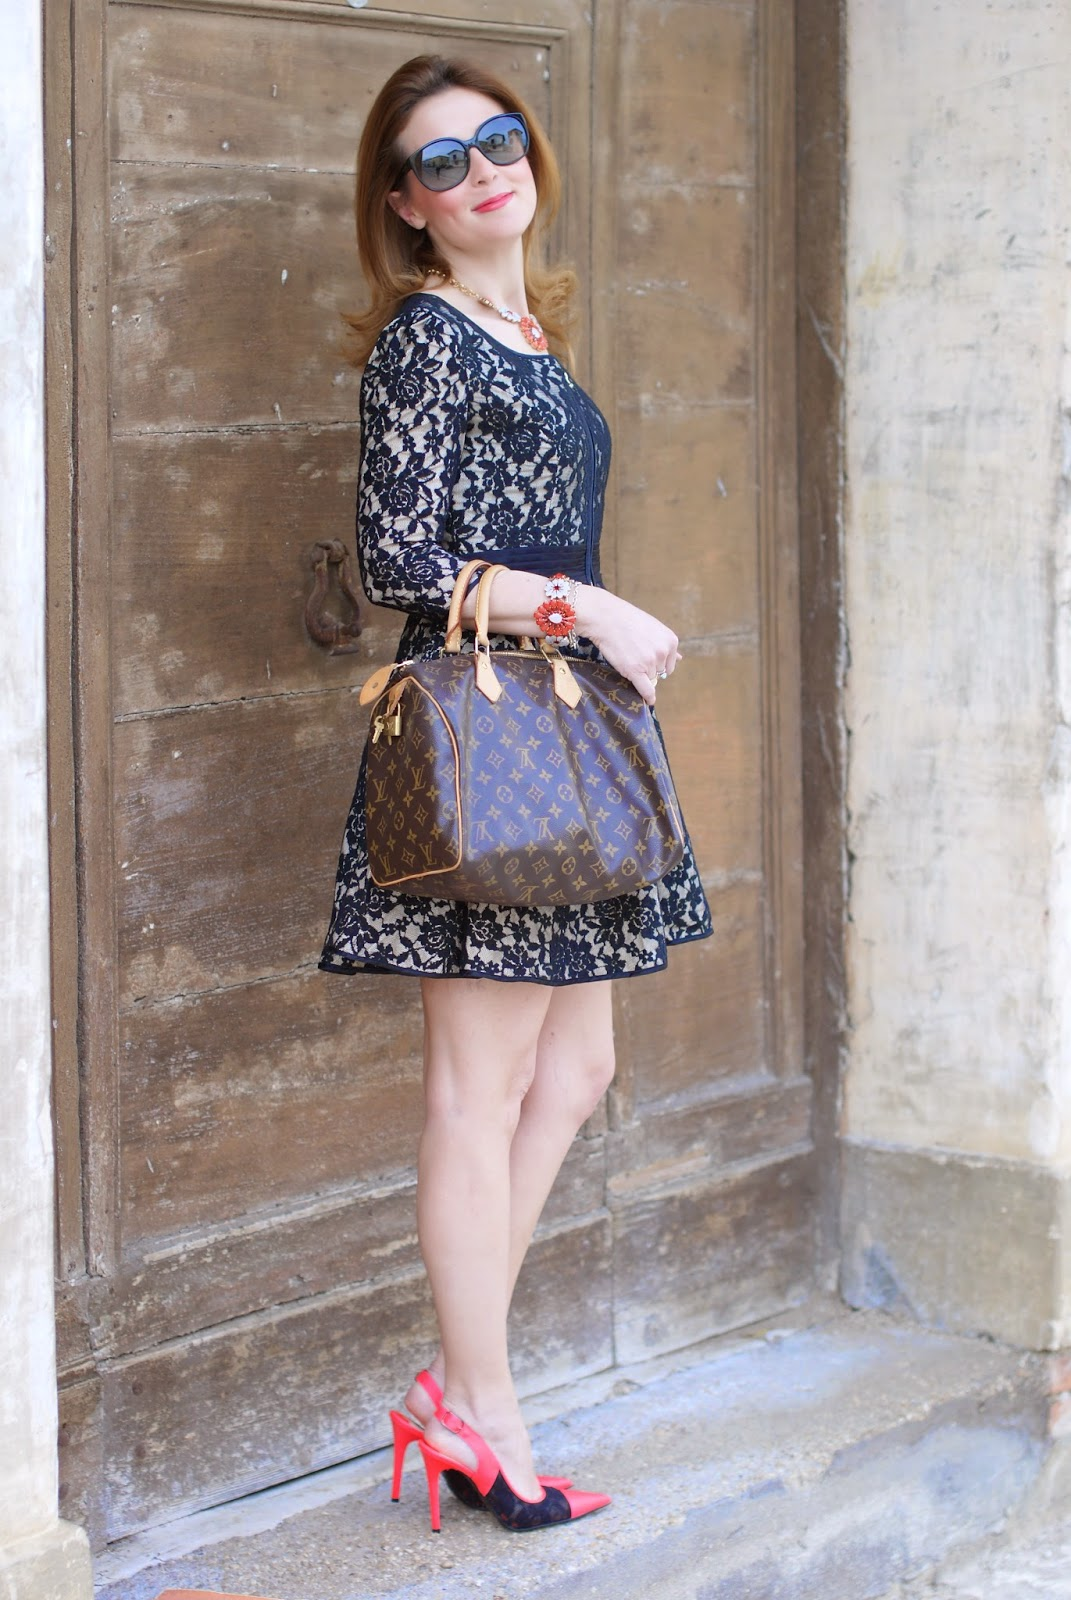 Blackfive black lace dress, cap toe pumps, Louis Vuitton Speedy bag, Daniel Wellington watch, Fashion and Cookies, fashion blogger